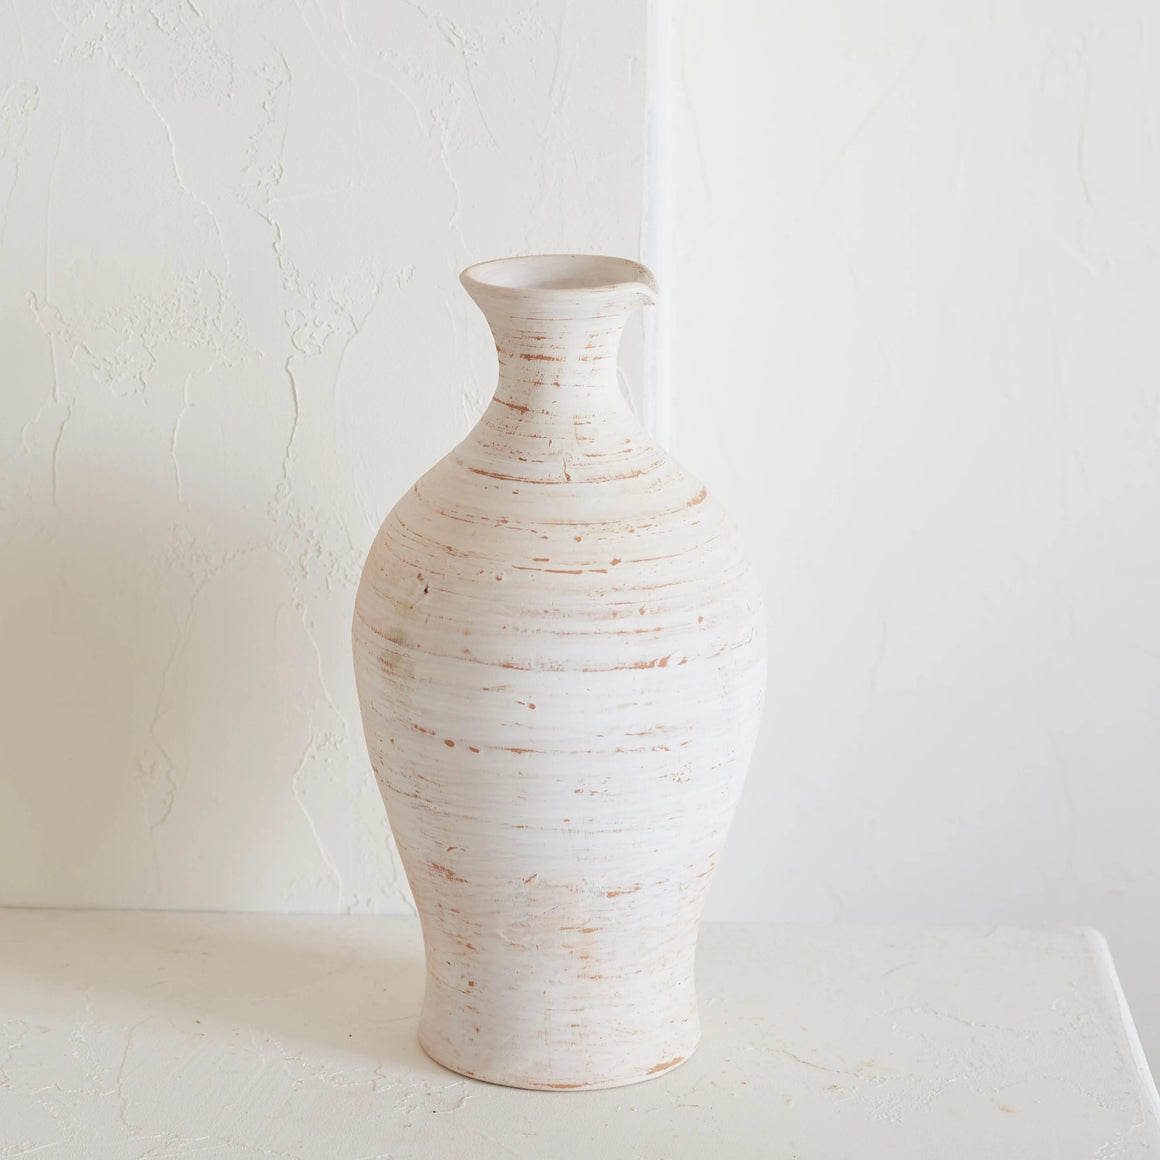 Earth Collection - Farah Vase Tall, White Washed / سيراميك